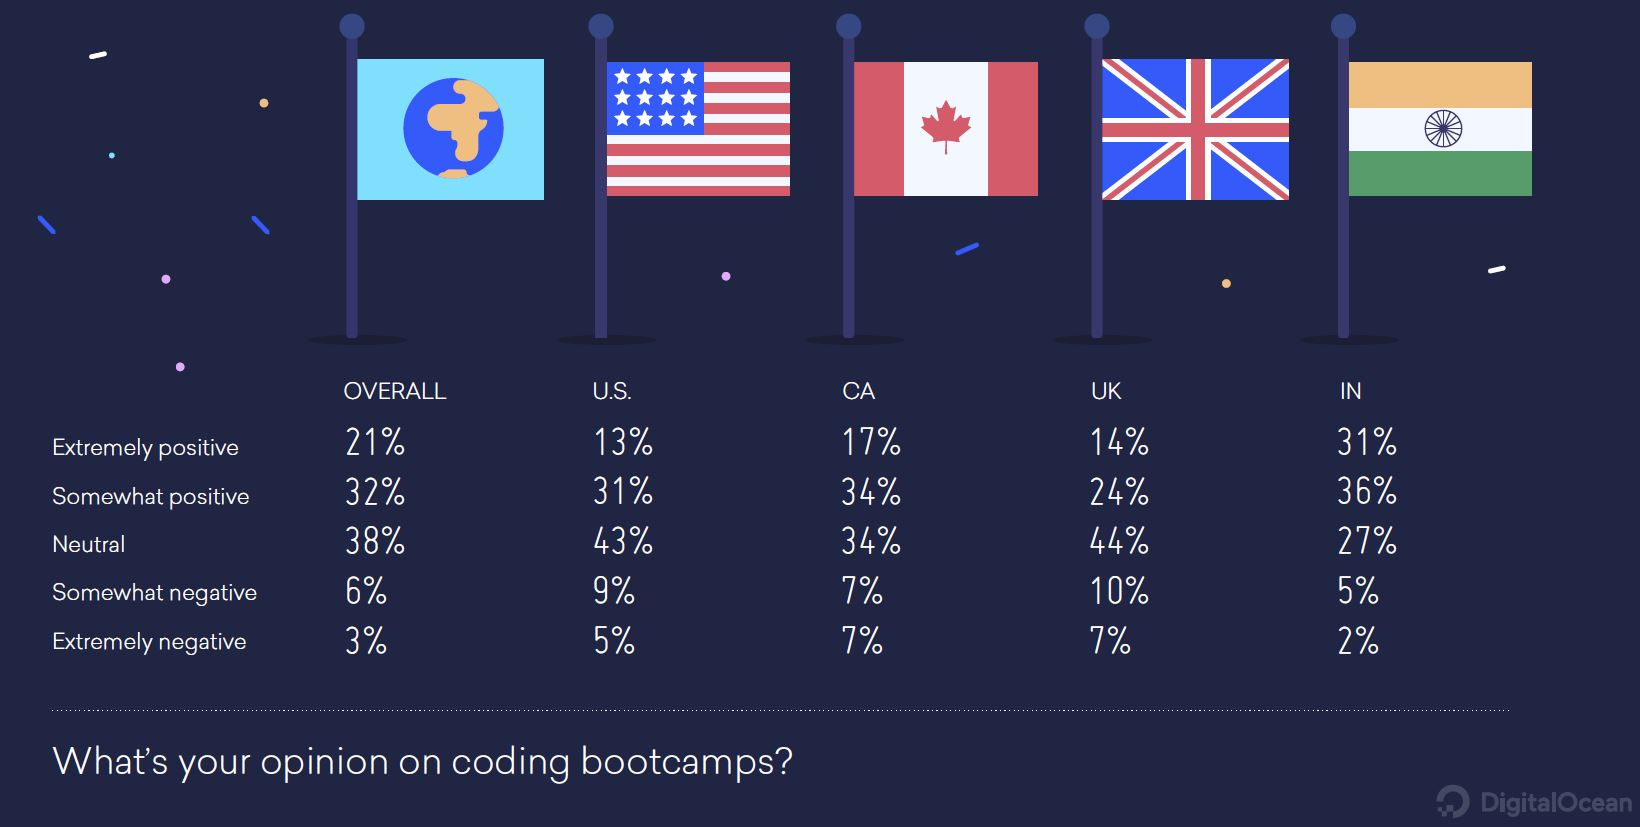 coding-bootcamp-opinions by country